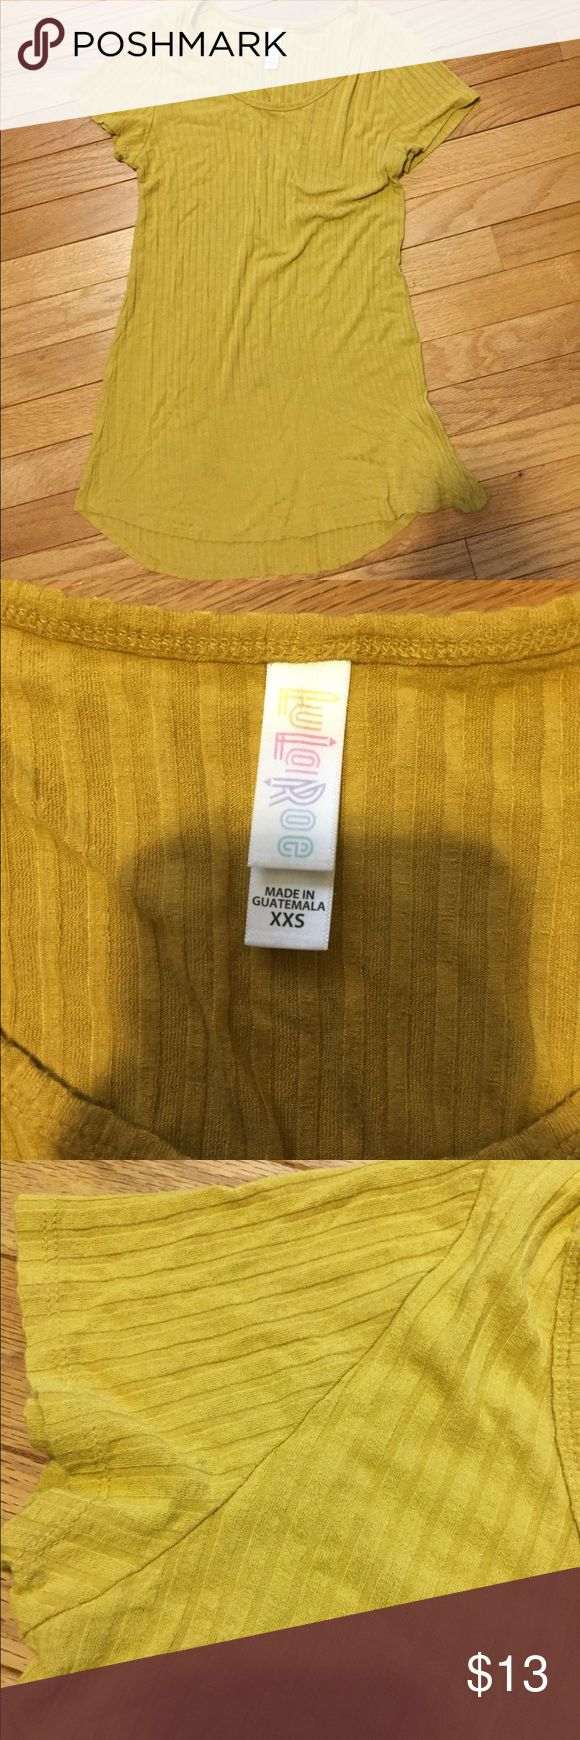 LuLaRoe Top LuLaRoe Top Short sleeve  Ribbed  Mustard yellow color Size xxs Please note: the wrinkles seen on the bottom of the shirt on the right side of the photo is from tying up that side of the shirt. It is not a defect LuLaRoe Tops Tees - Short Sleeve